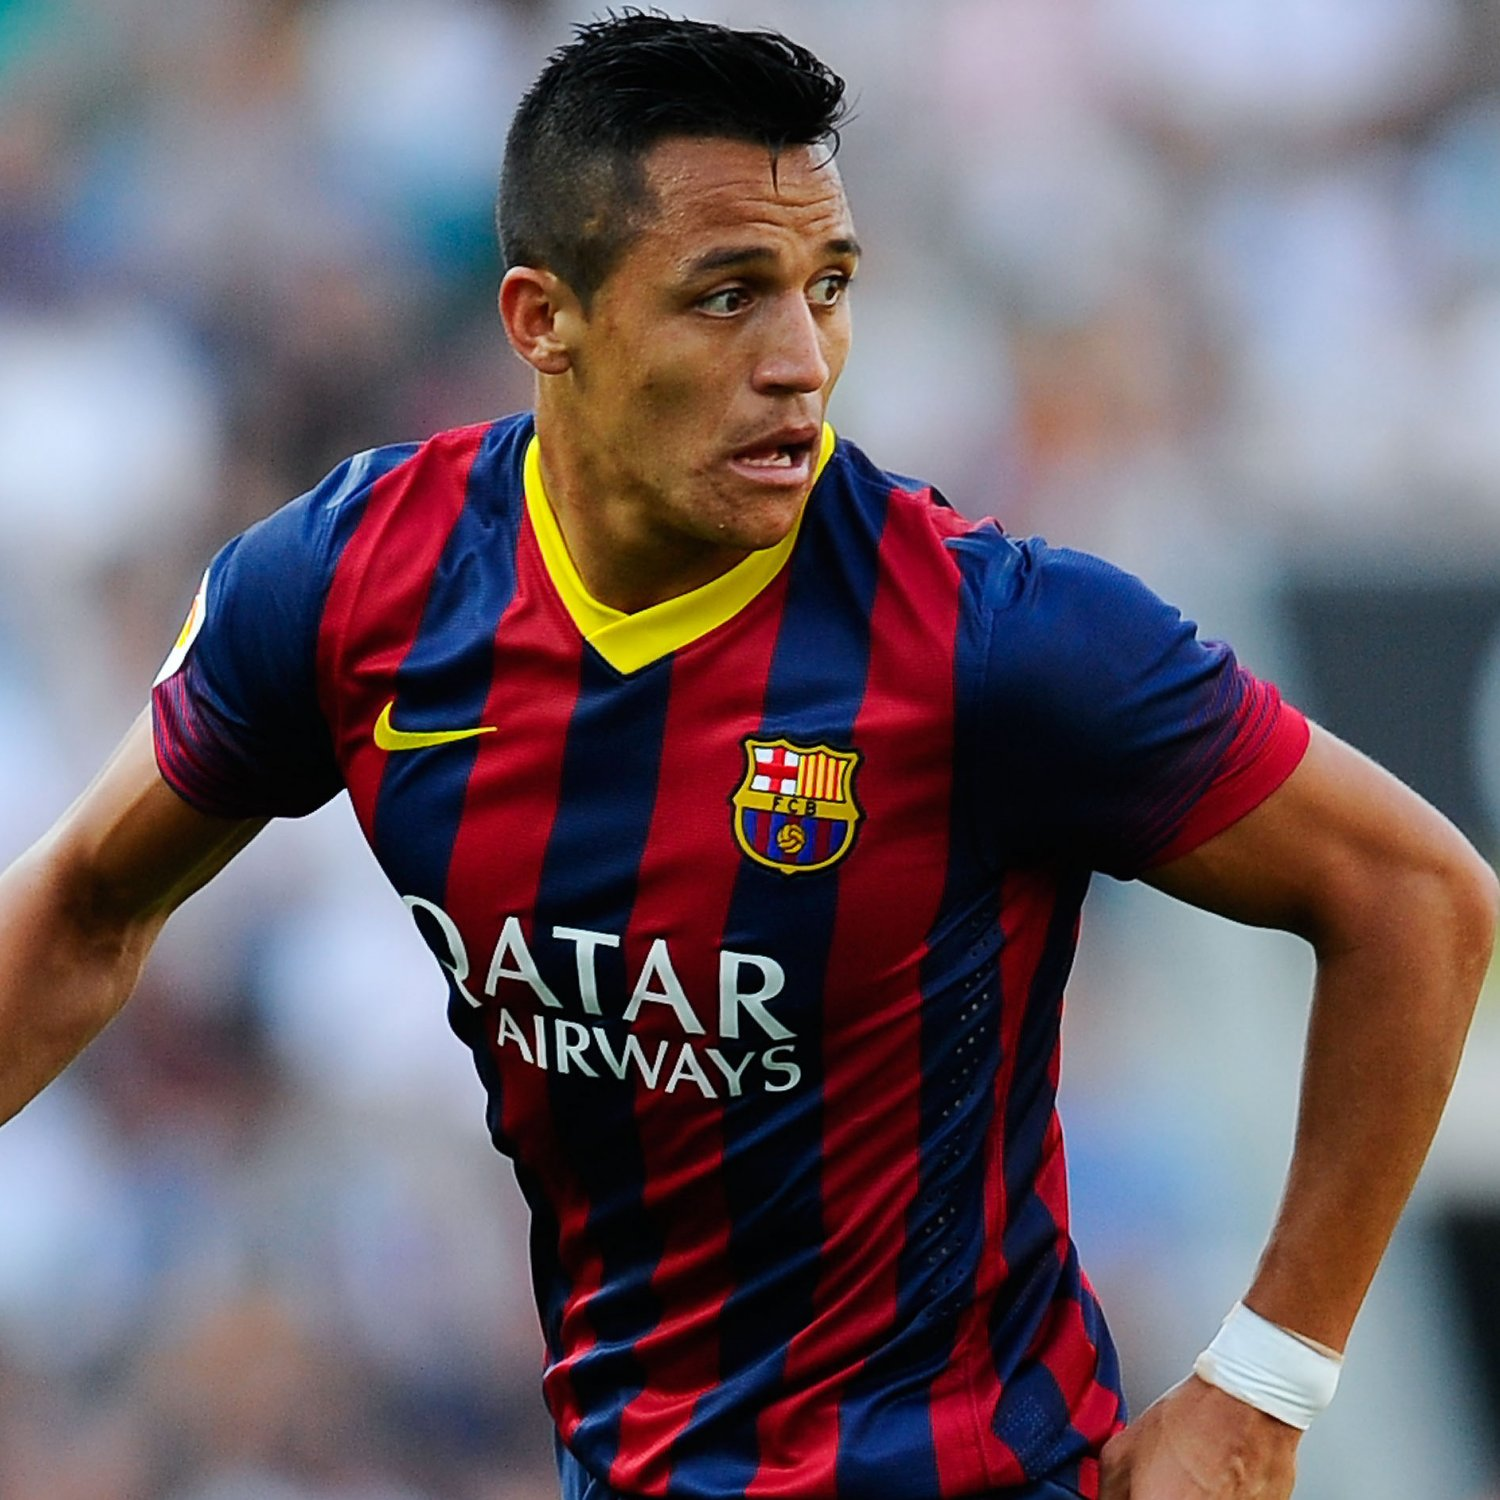 Manchester United Transfer News Alexis Sanchez Rumours: Manchester United Transfer News: Alexis Sanchez And Stefan